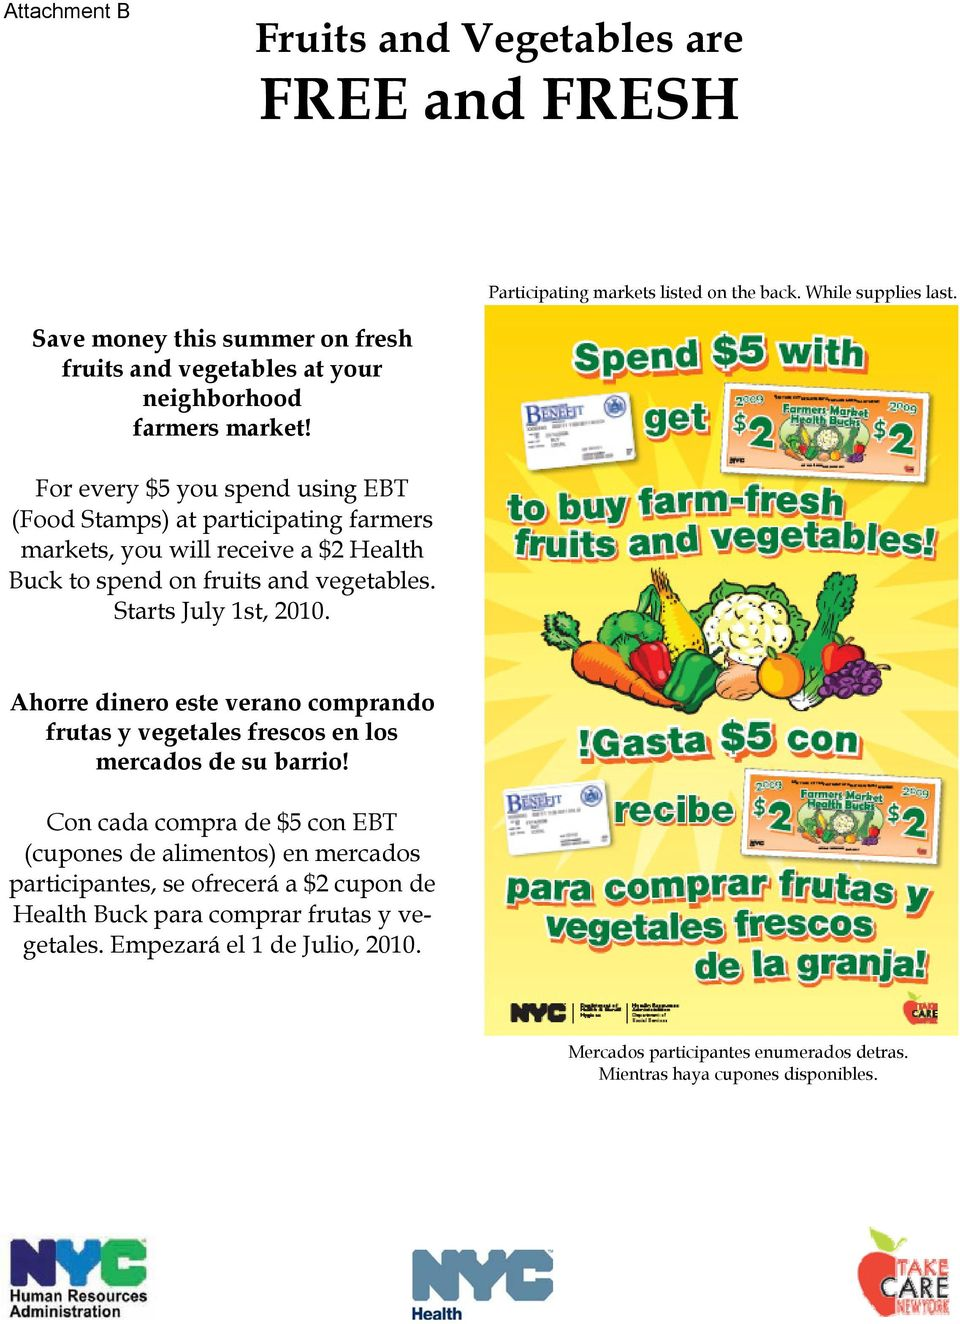 For every $5 you spend using EBT (Food Stamps) at participating farmers markets, you will receive a $2 Health Buck to spend on fruits and vegetables. Starts July 1st, 2010.